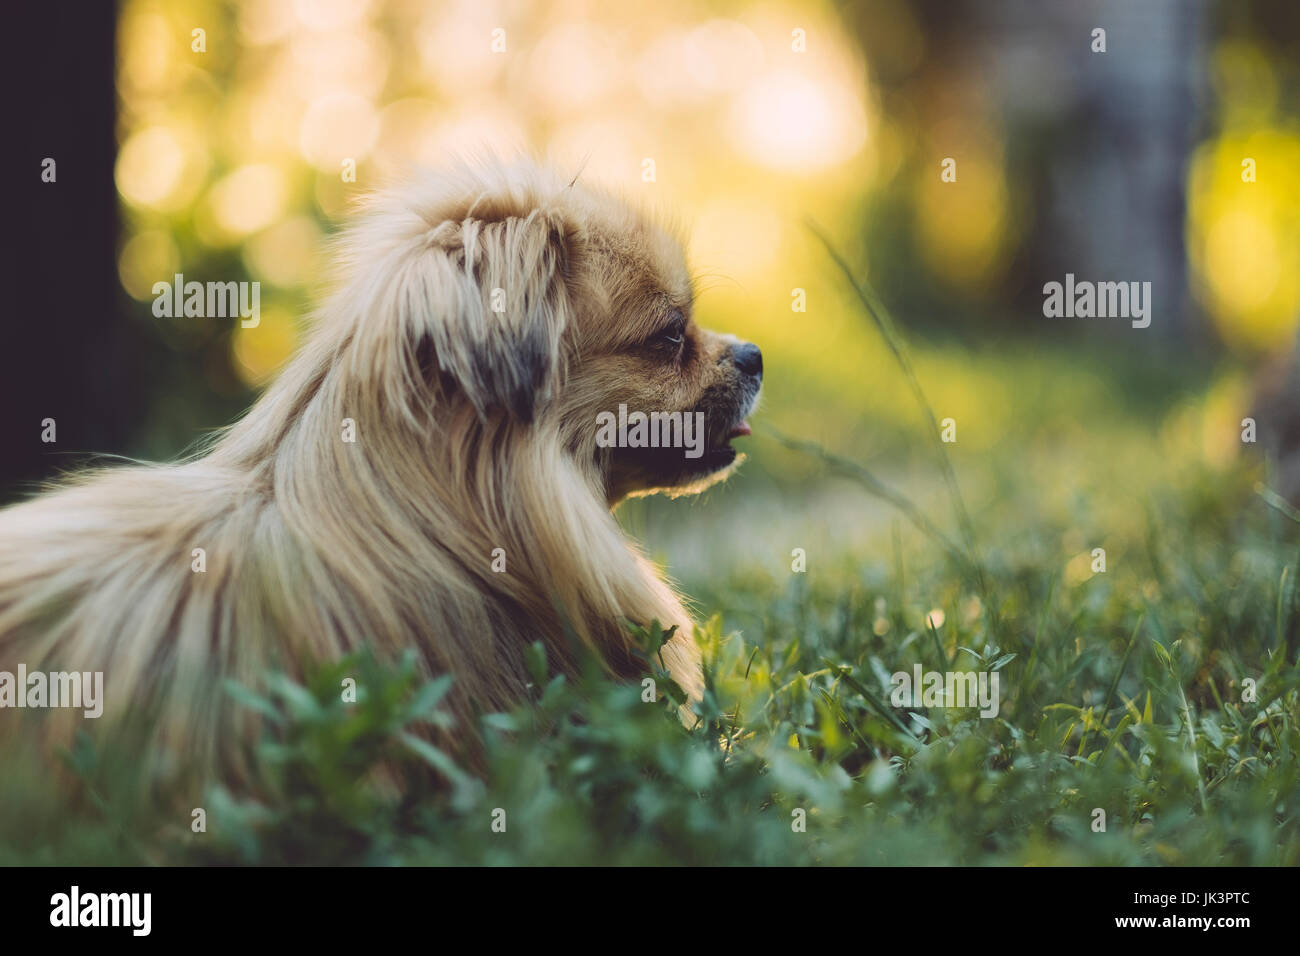 Chien pékinois Photo Stock